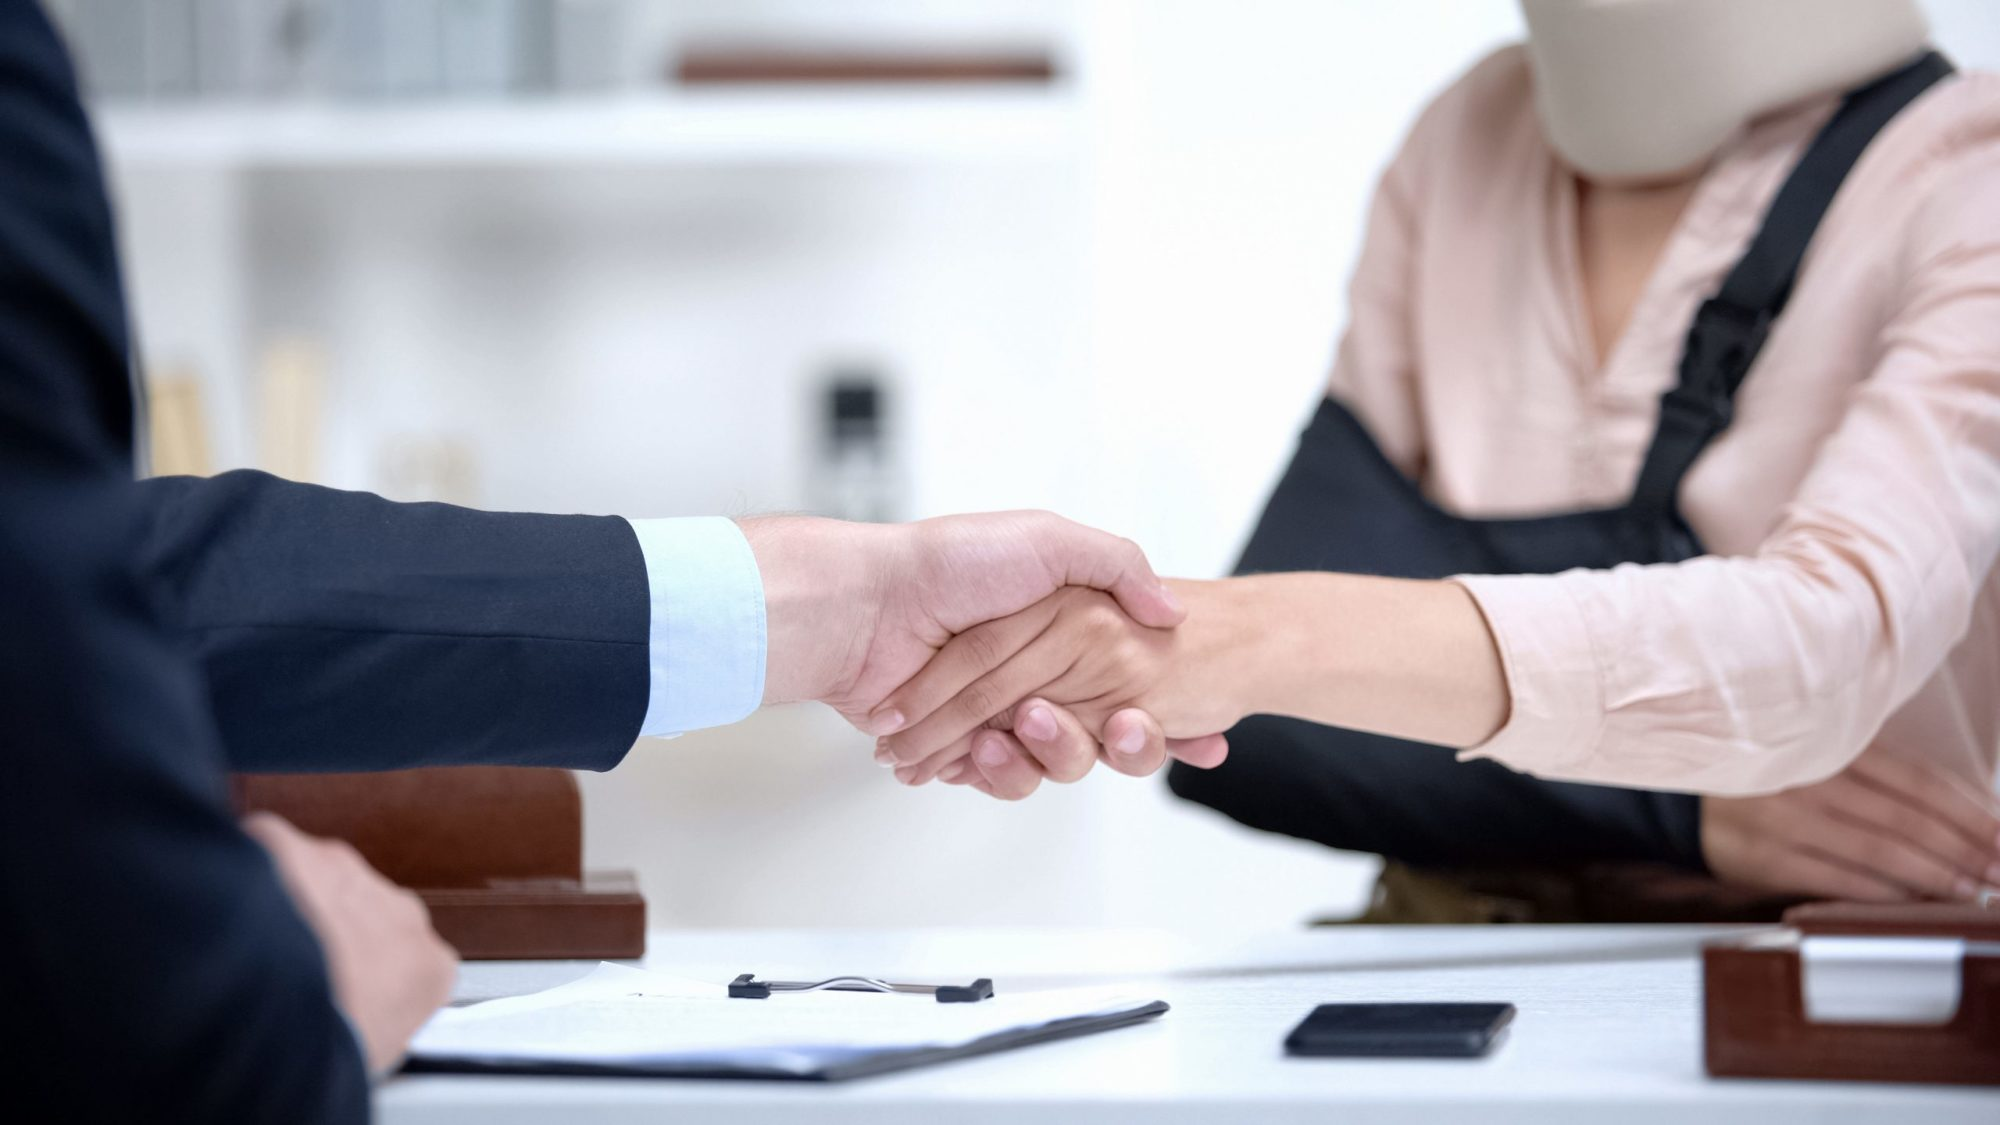 personal injury attorney shaking hands with client